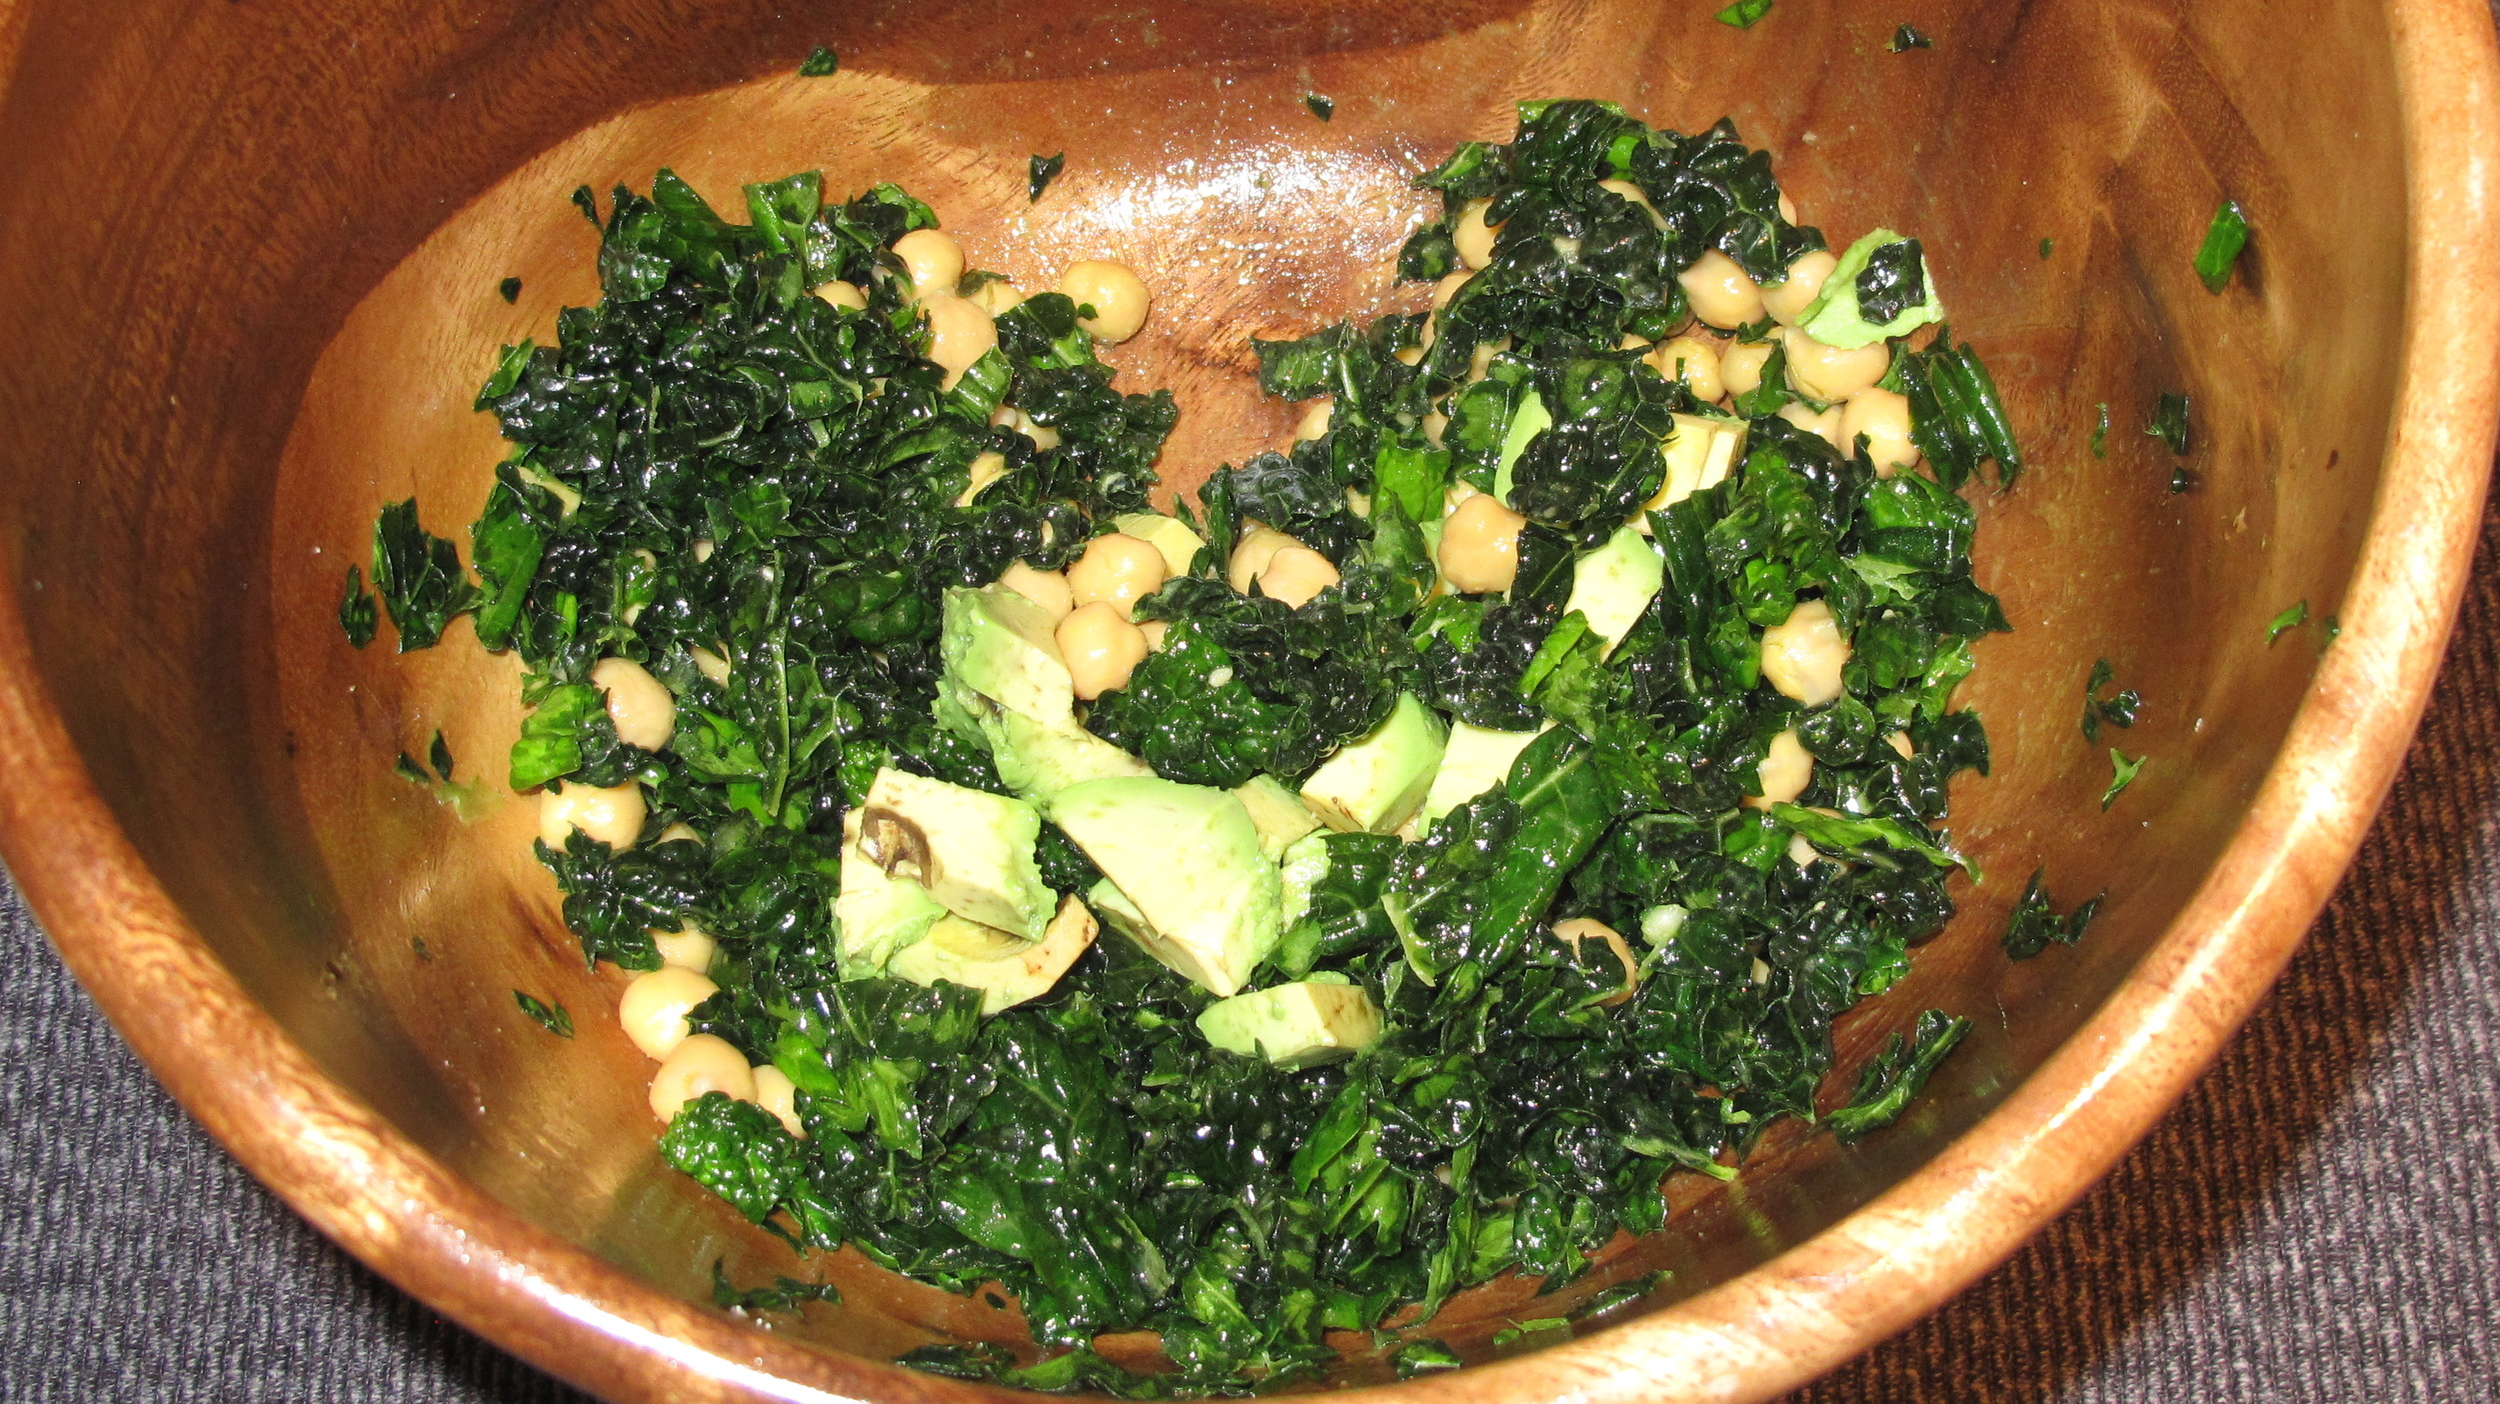 Connect with your food! Massage your kale to soften it, rather than dumping it in a frying pan.